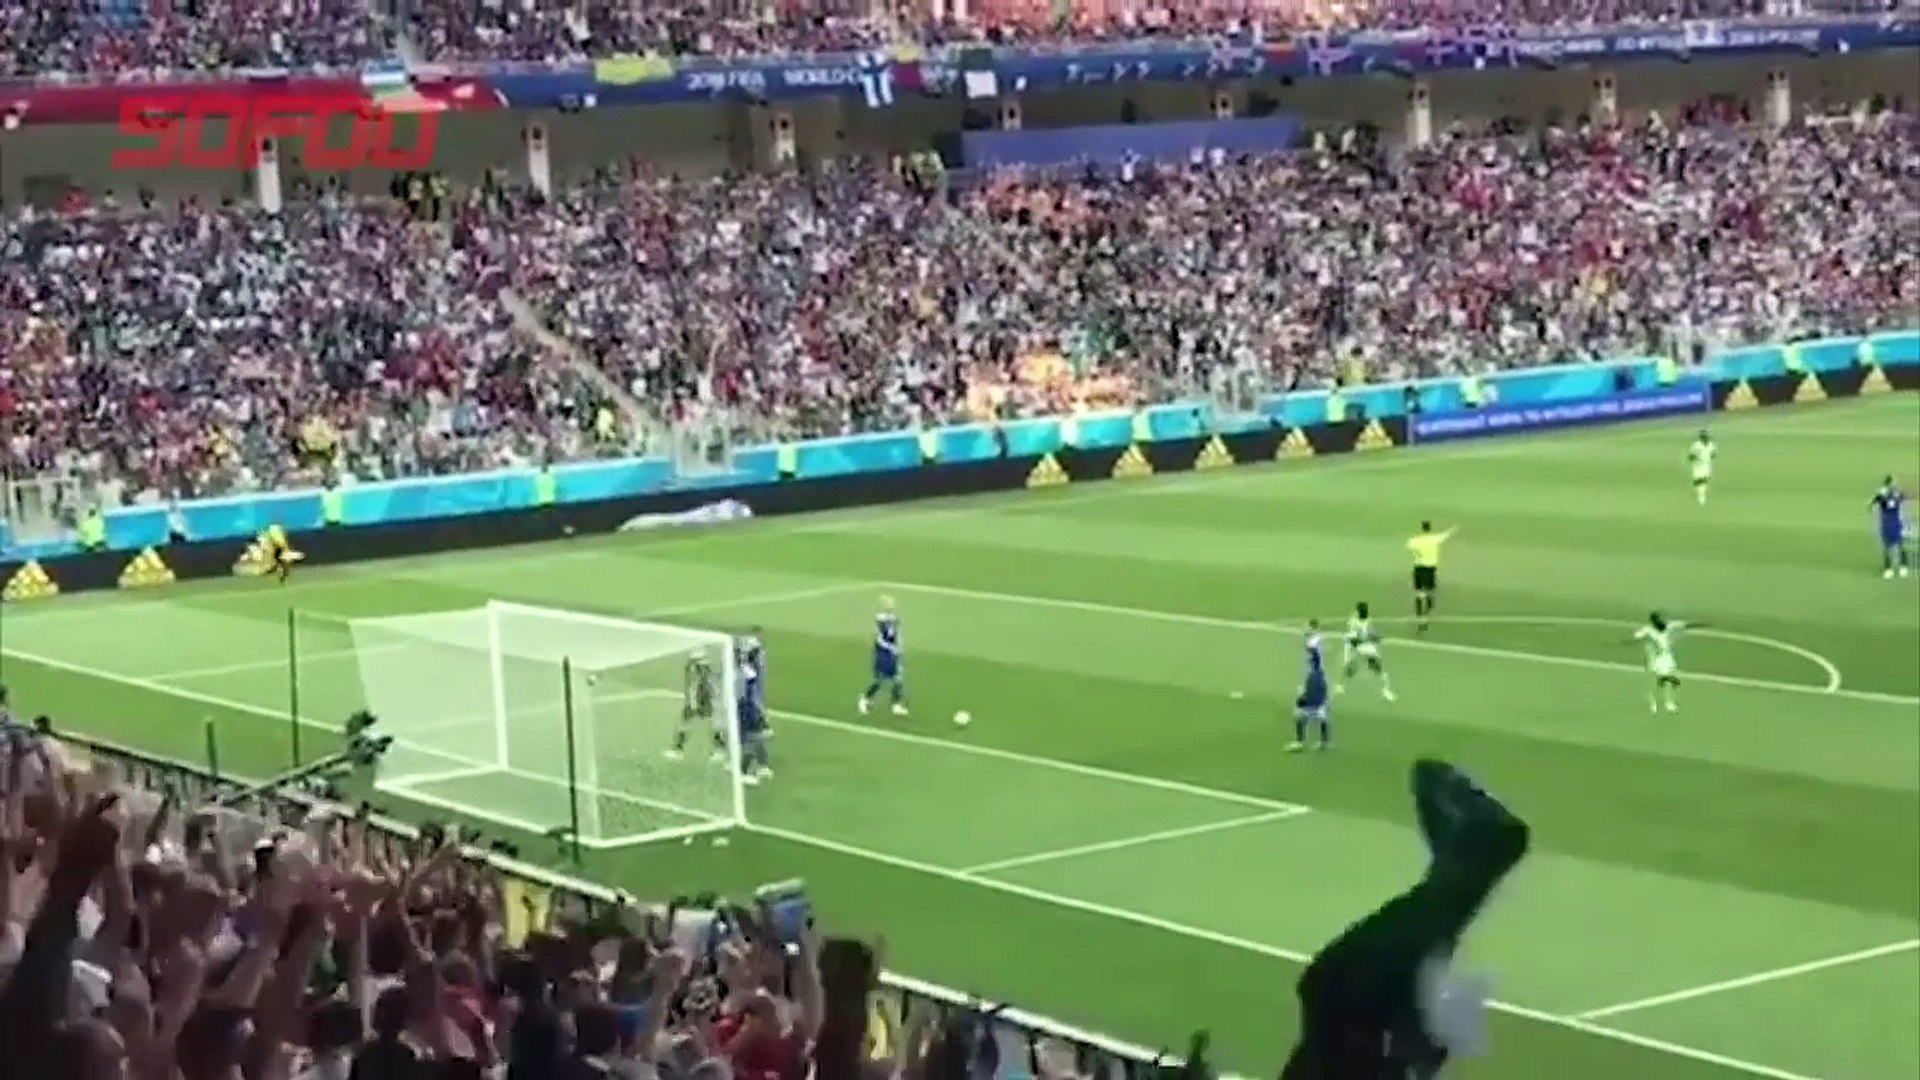 Nigeria Fans Reactions & Incredible Celebration After Ahmed Musa's 2 Goals (Nigeria vs Iceland 2